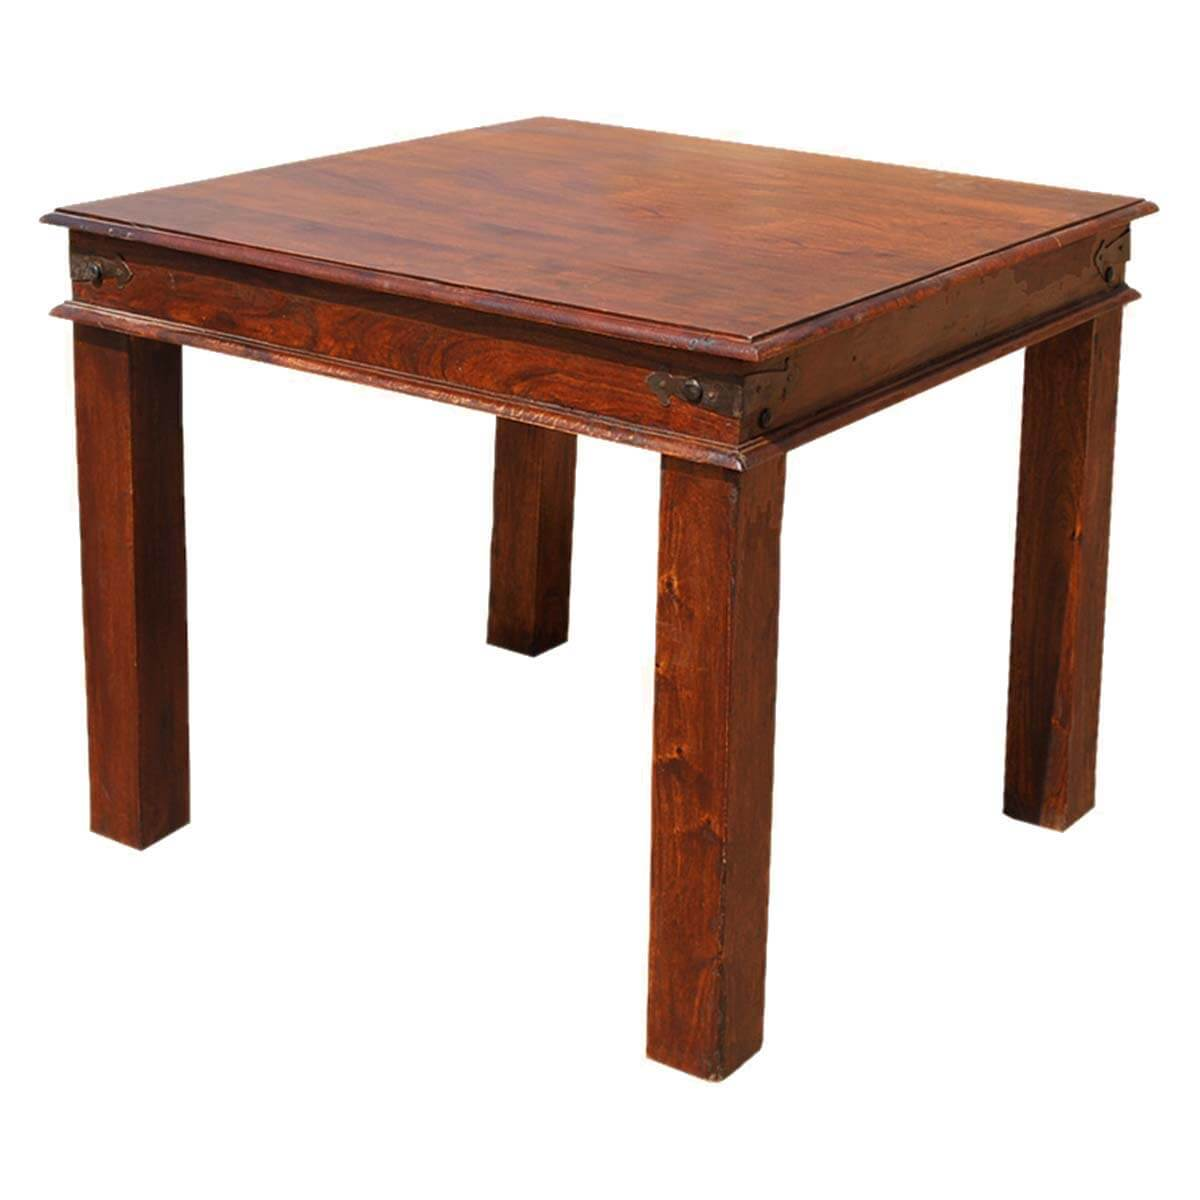 Grogan rustic solid wood square dining table